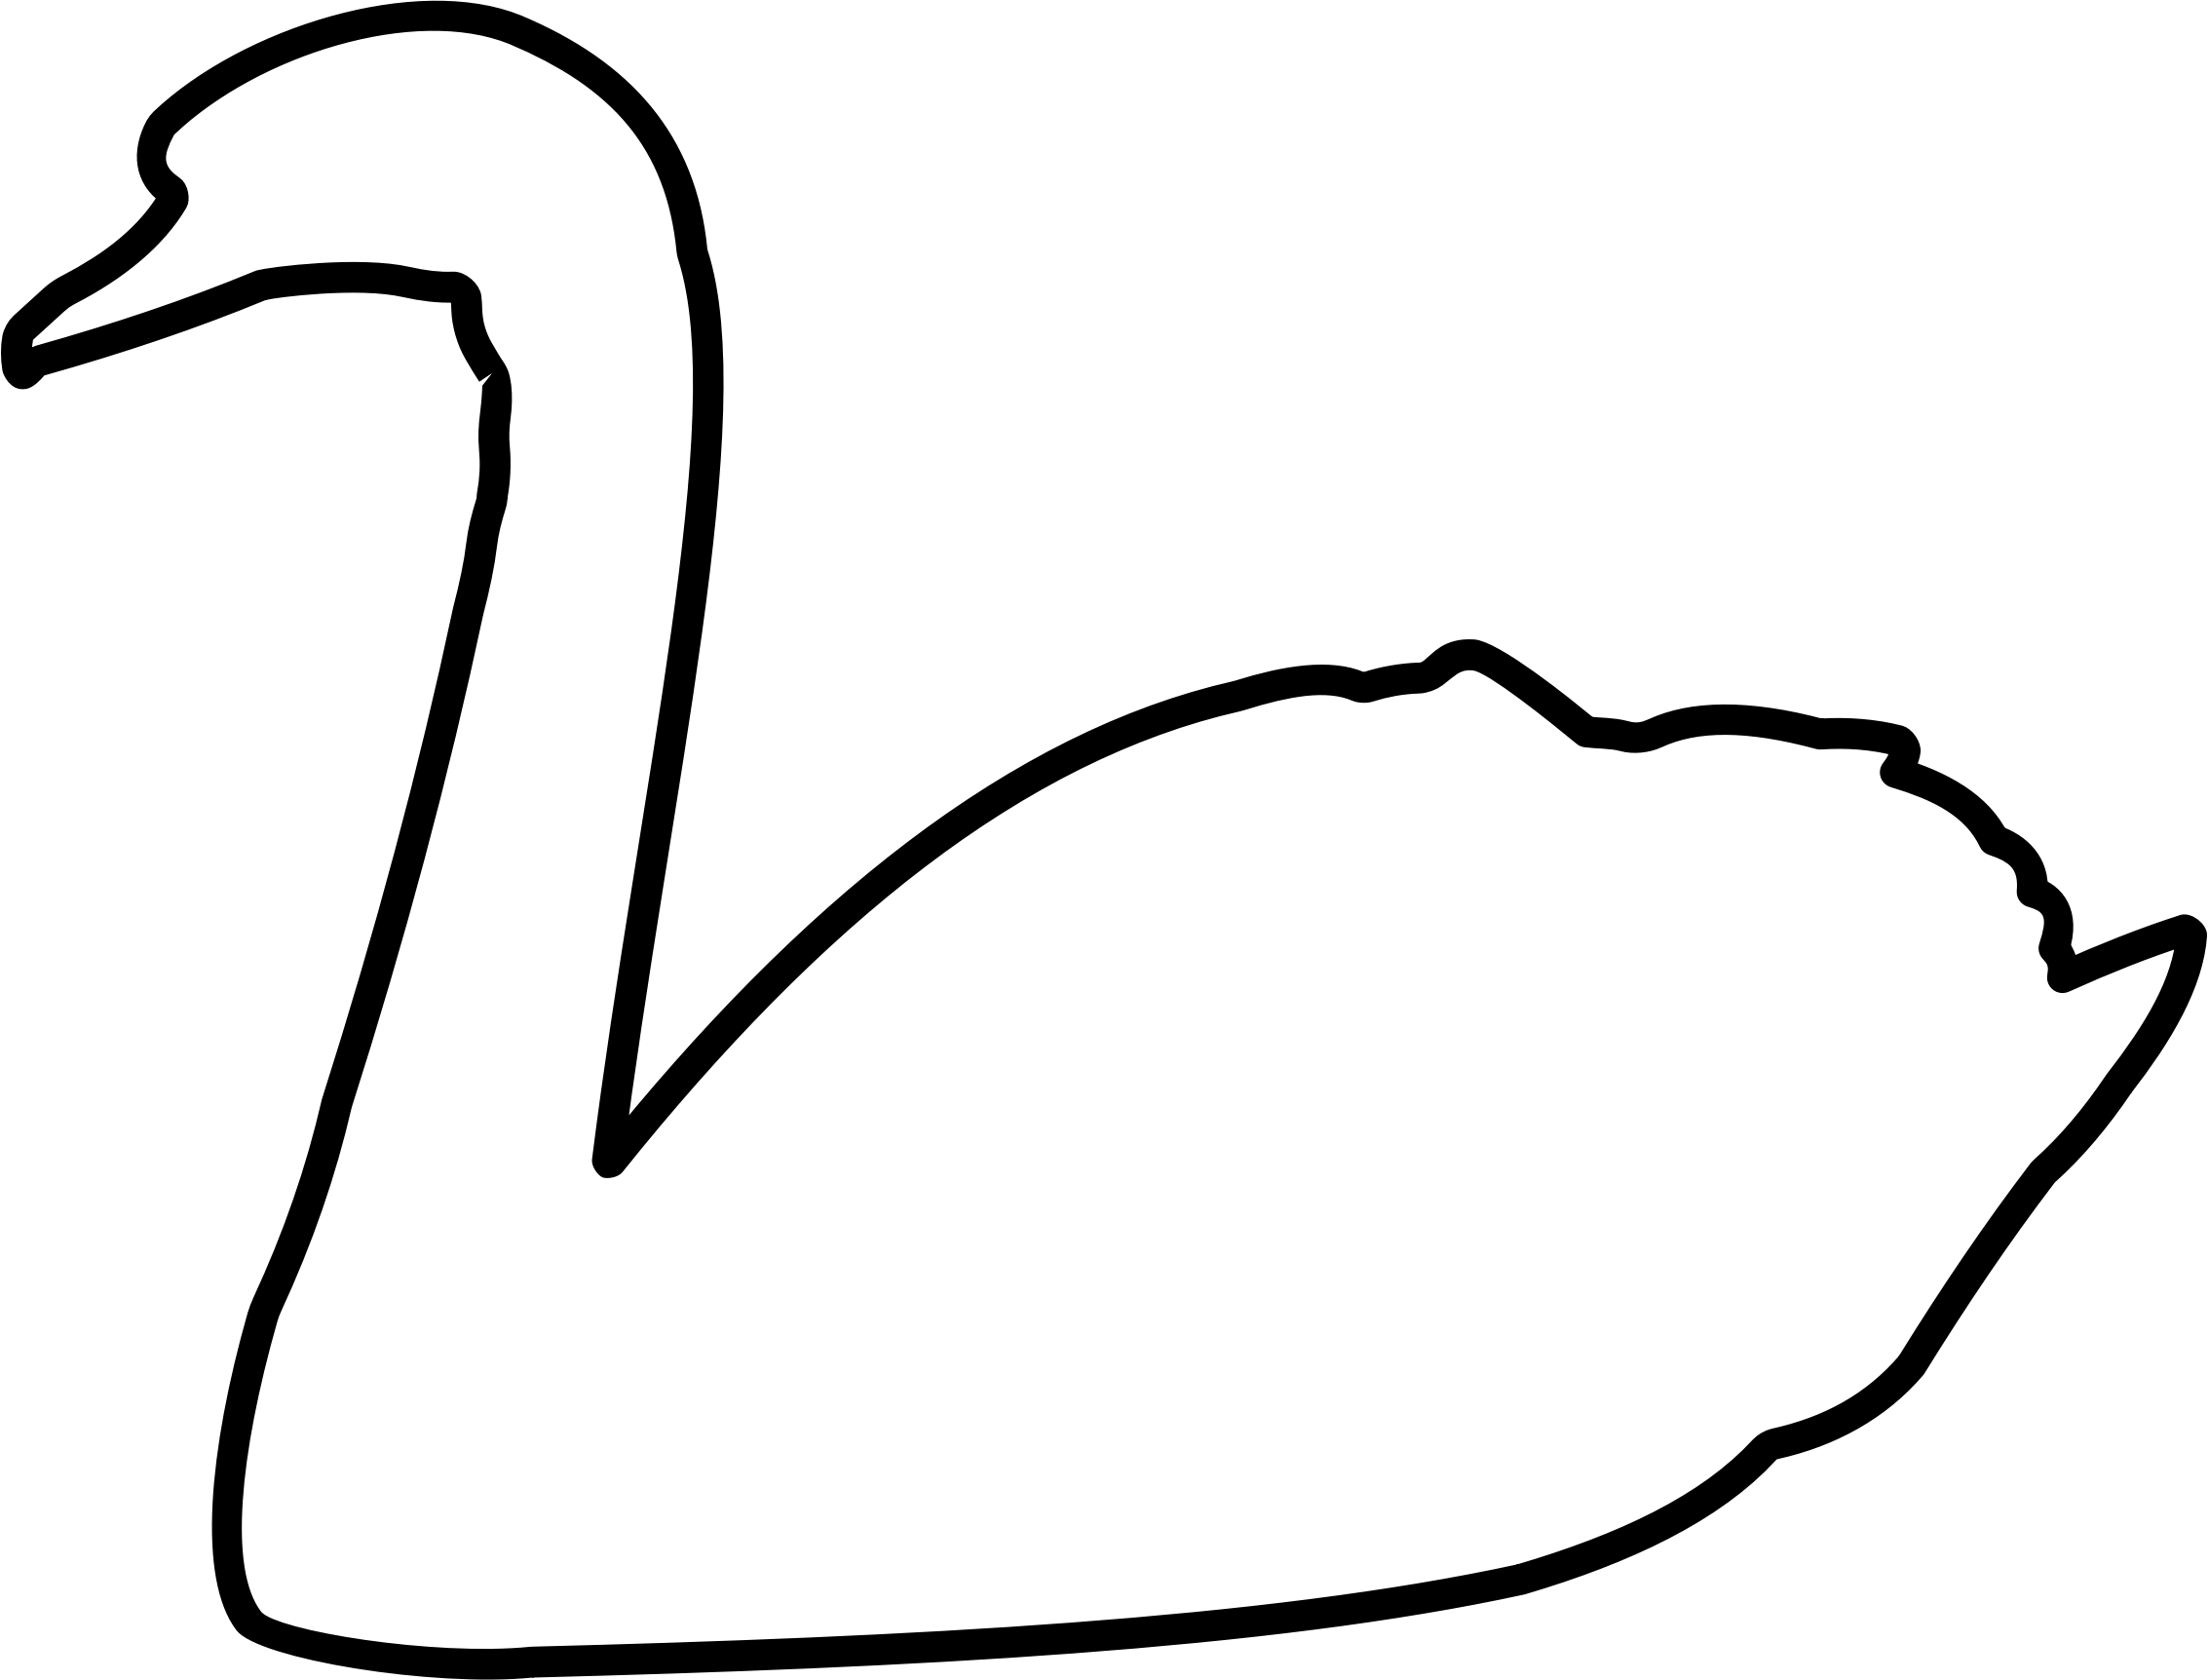 swan modified from GDJ  by kjx